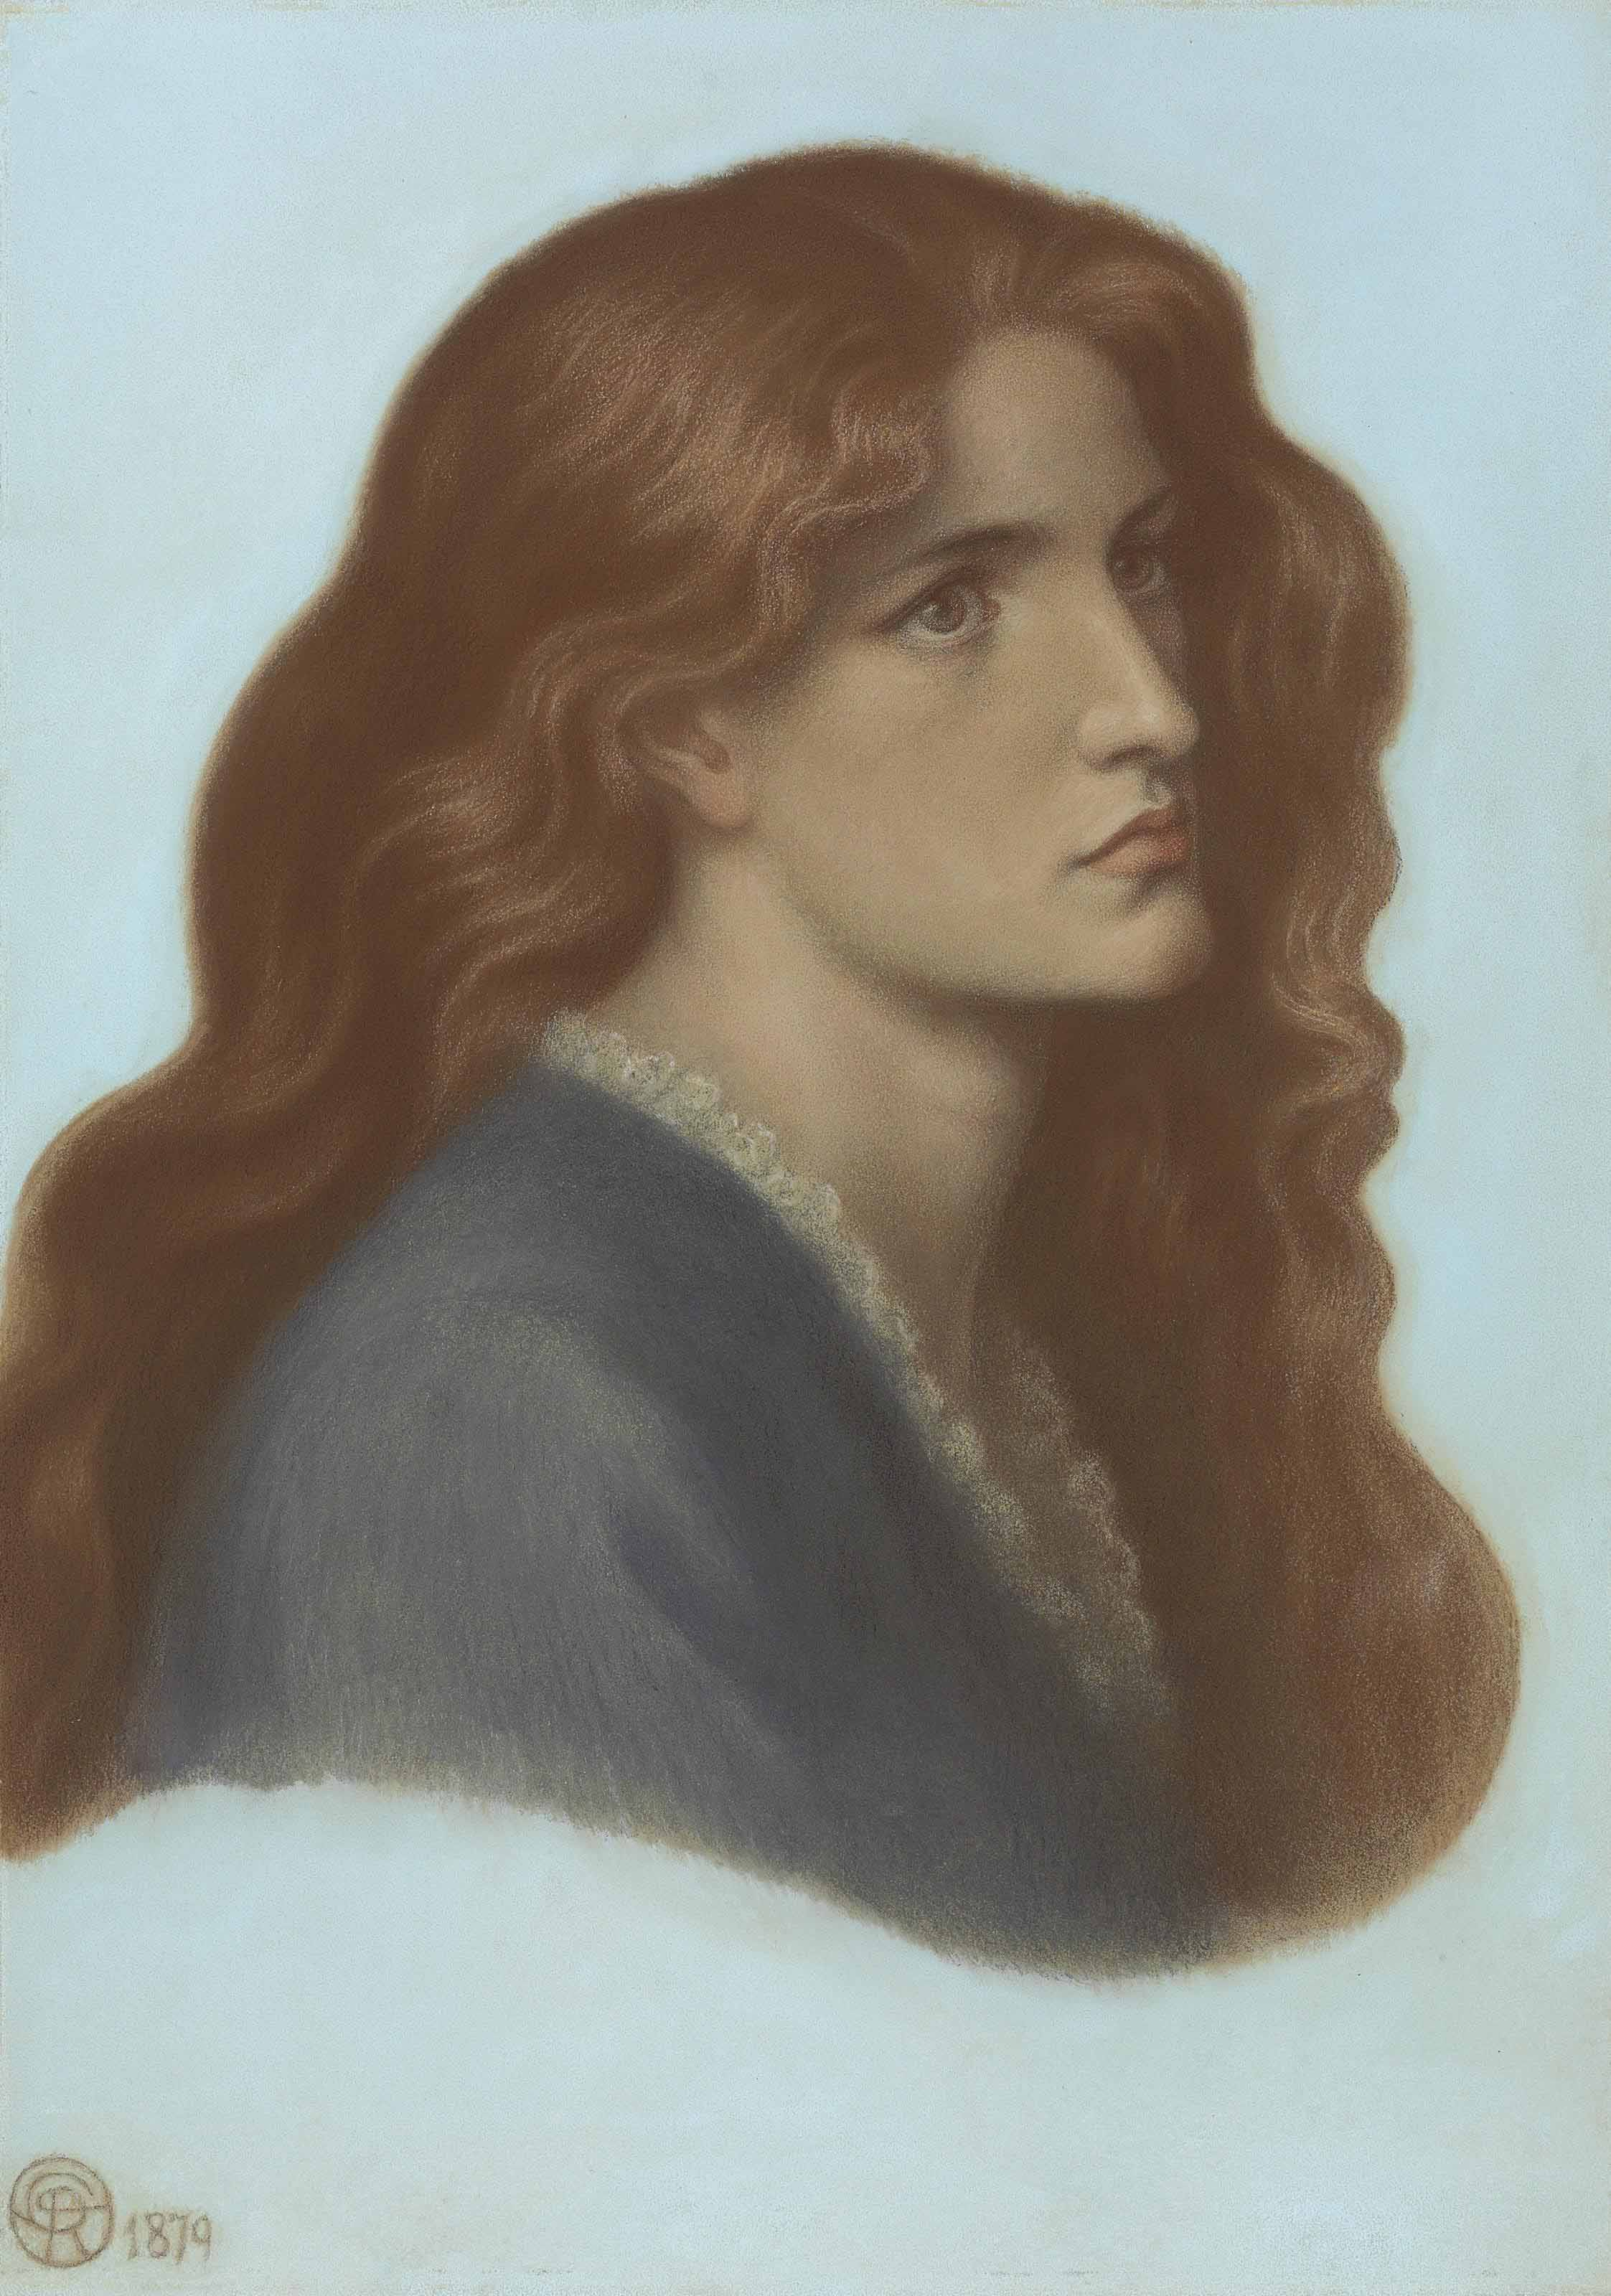 Portrait of Edith Williams, later Lady Griffith-Boscawen, bust-length in profile to the right with her hair flowing over her shoulders